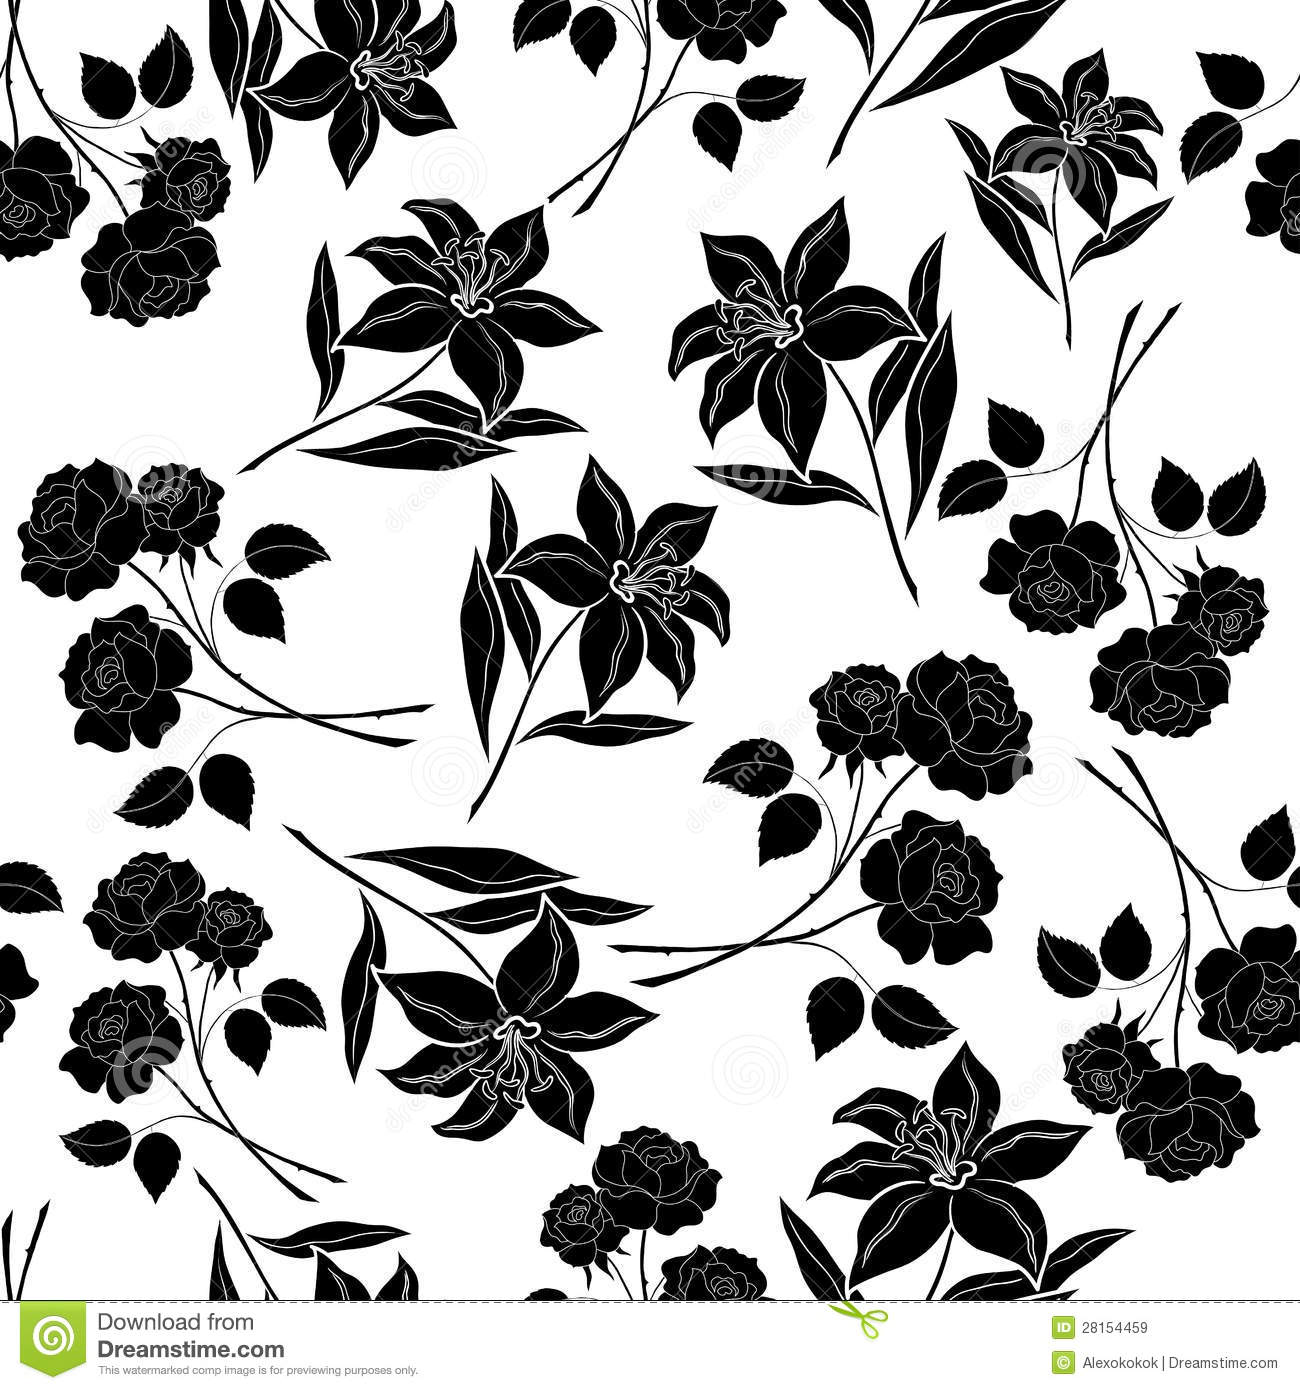 Black Flower Silhouette Pattern Royalty Free Stock Images: Seamless Floral Background, Black Silhouettes Stock Vector